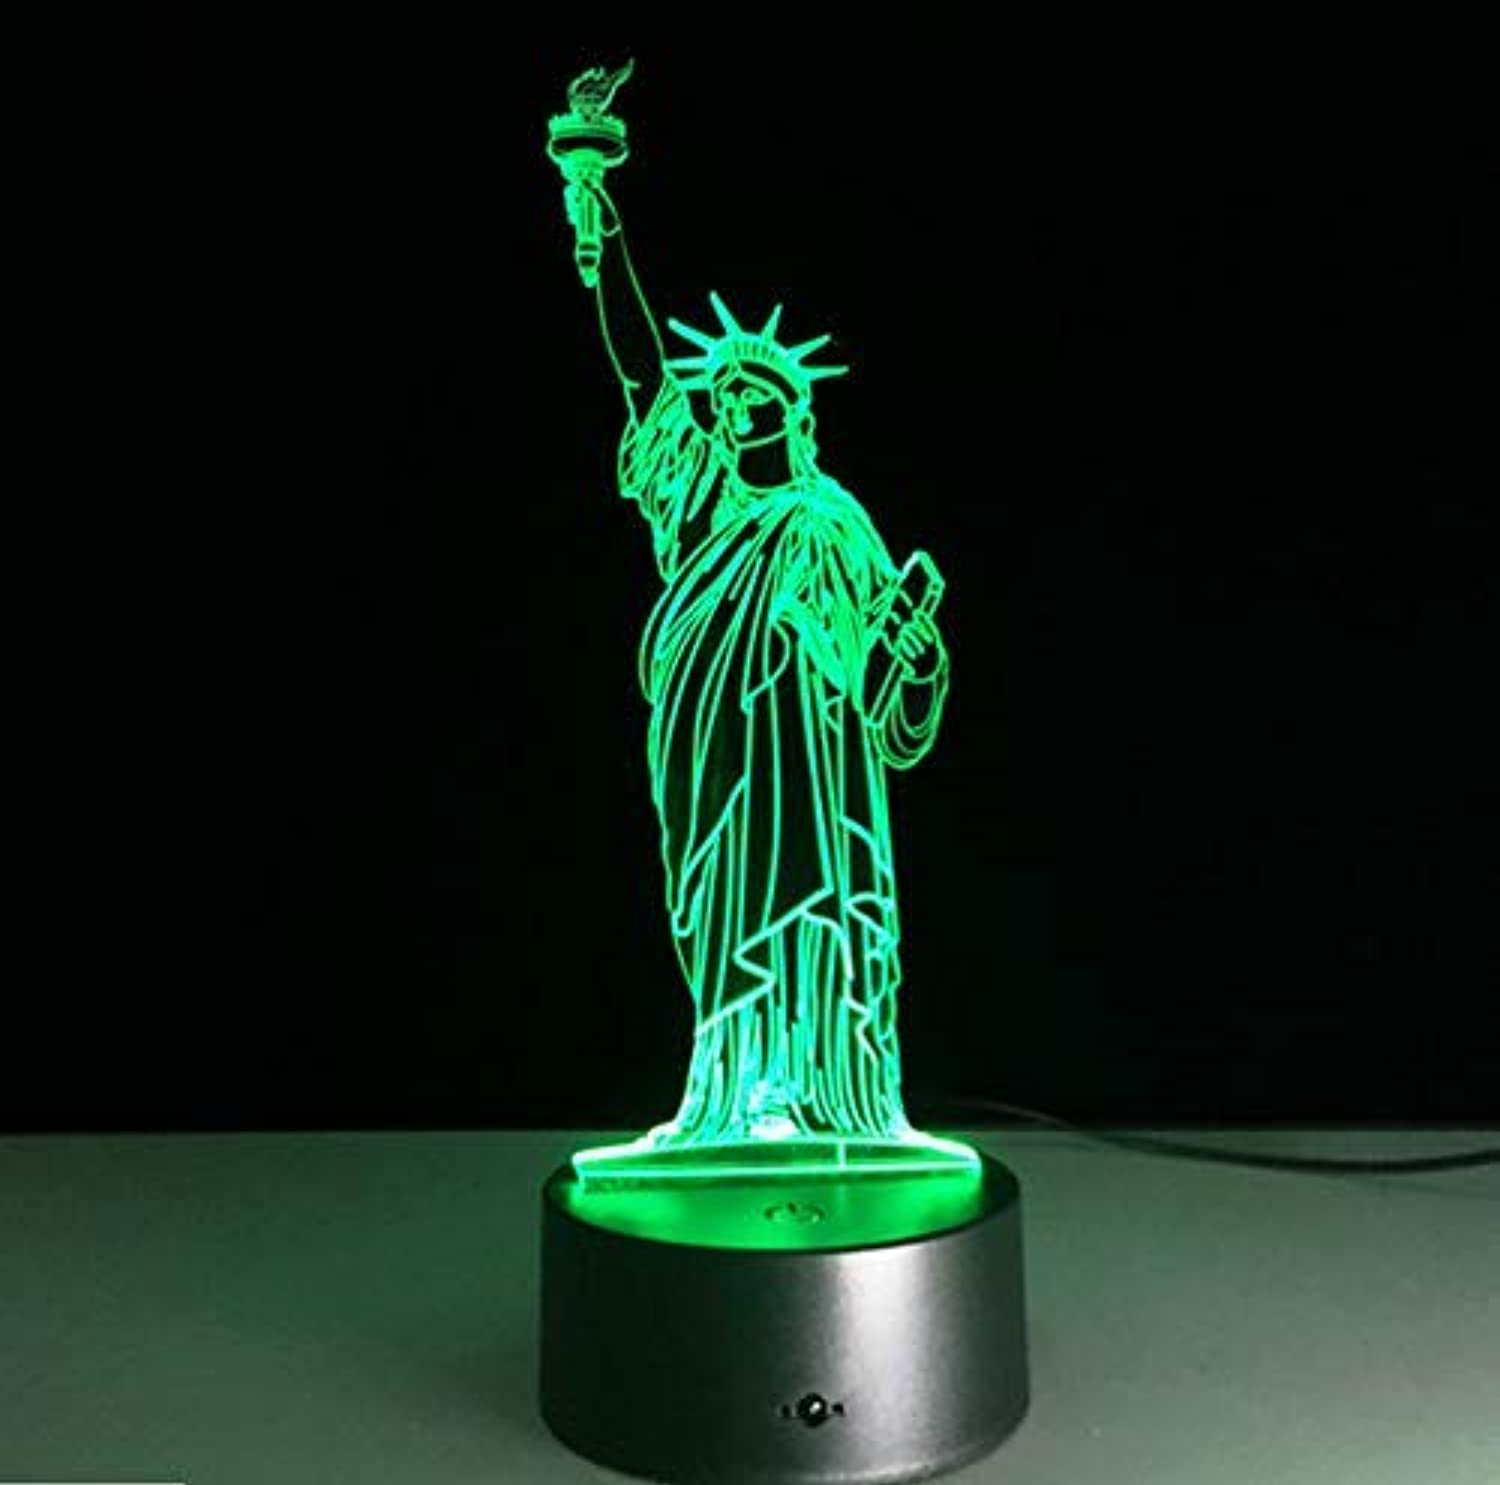 BMY Statue of Liberty Led Night Light USB 7 colors Changeable Mood Lamp Bedroom Table Lamp Kids Friends